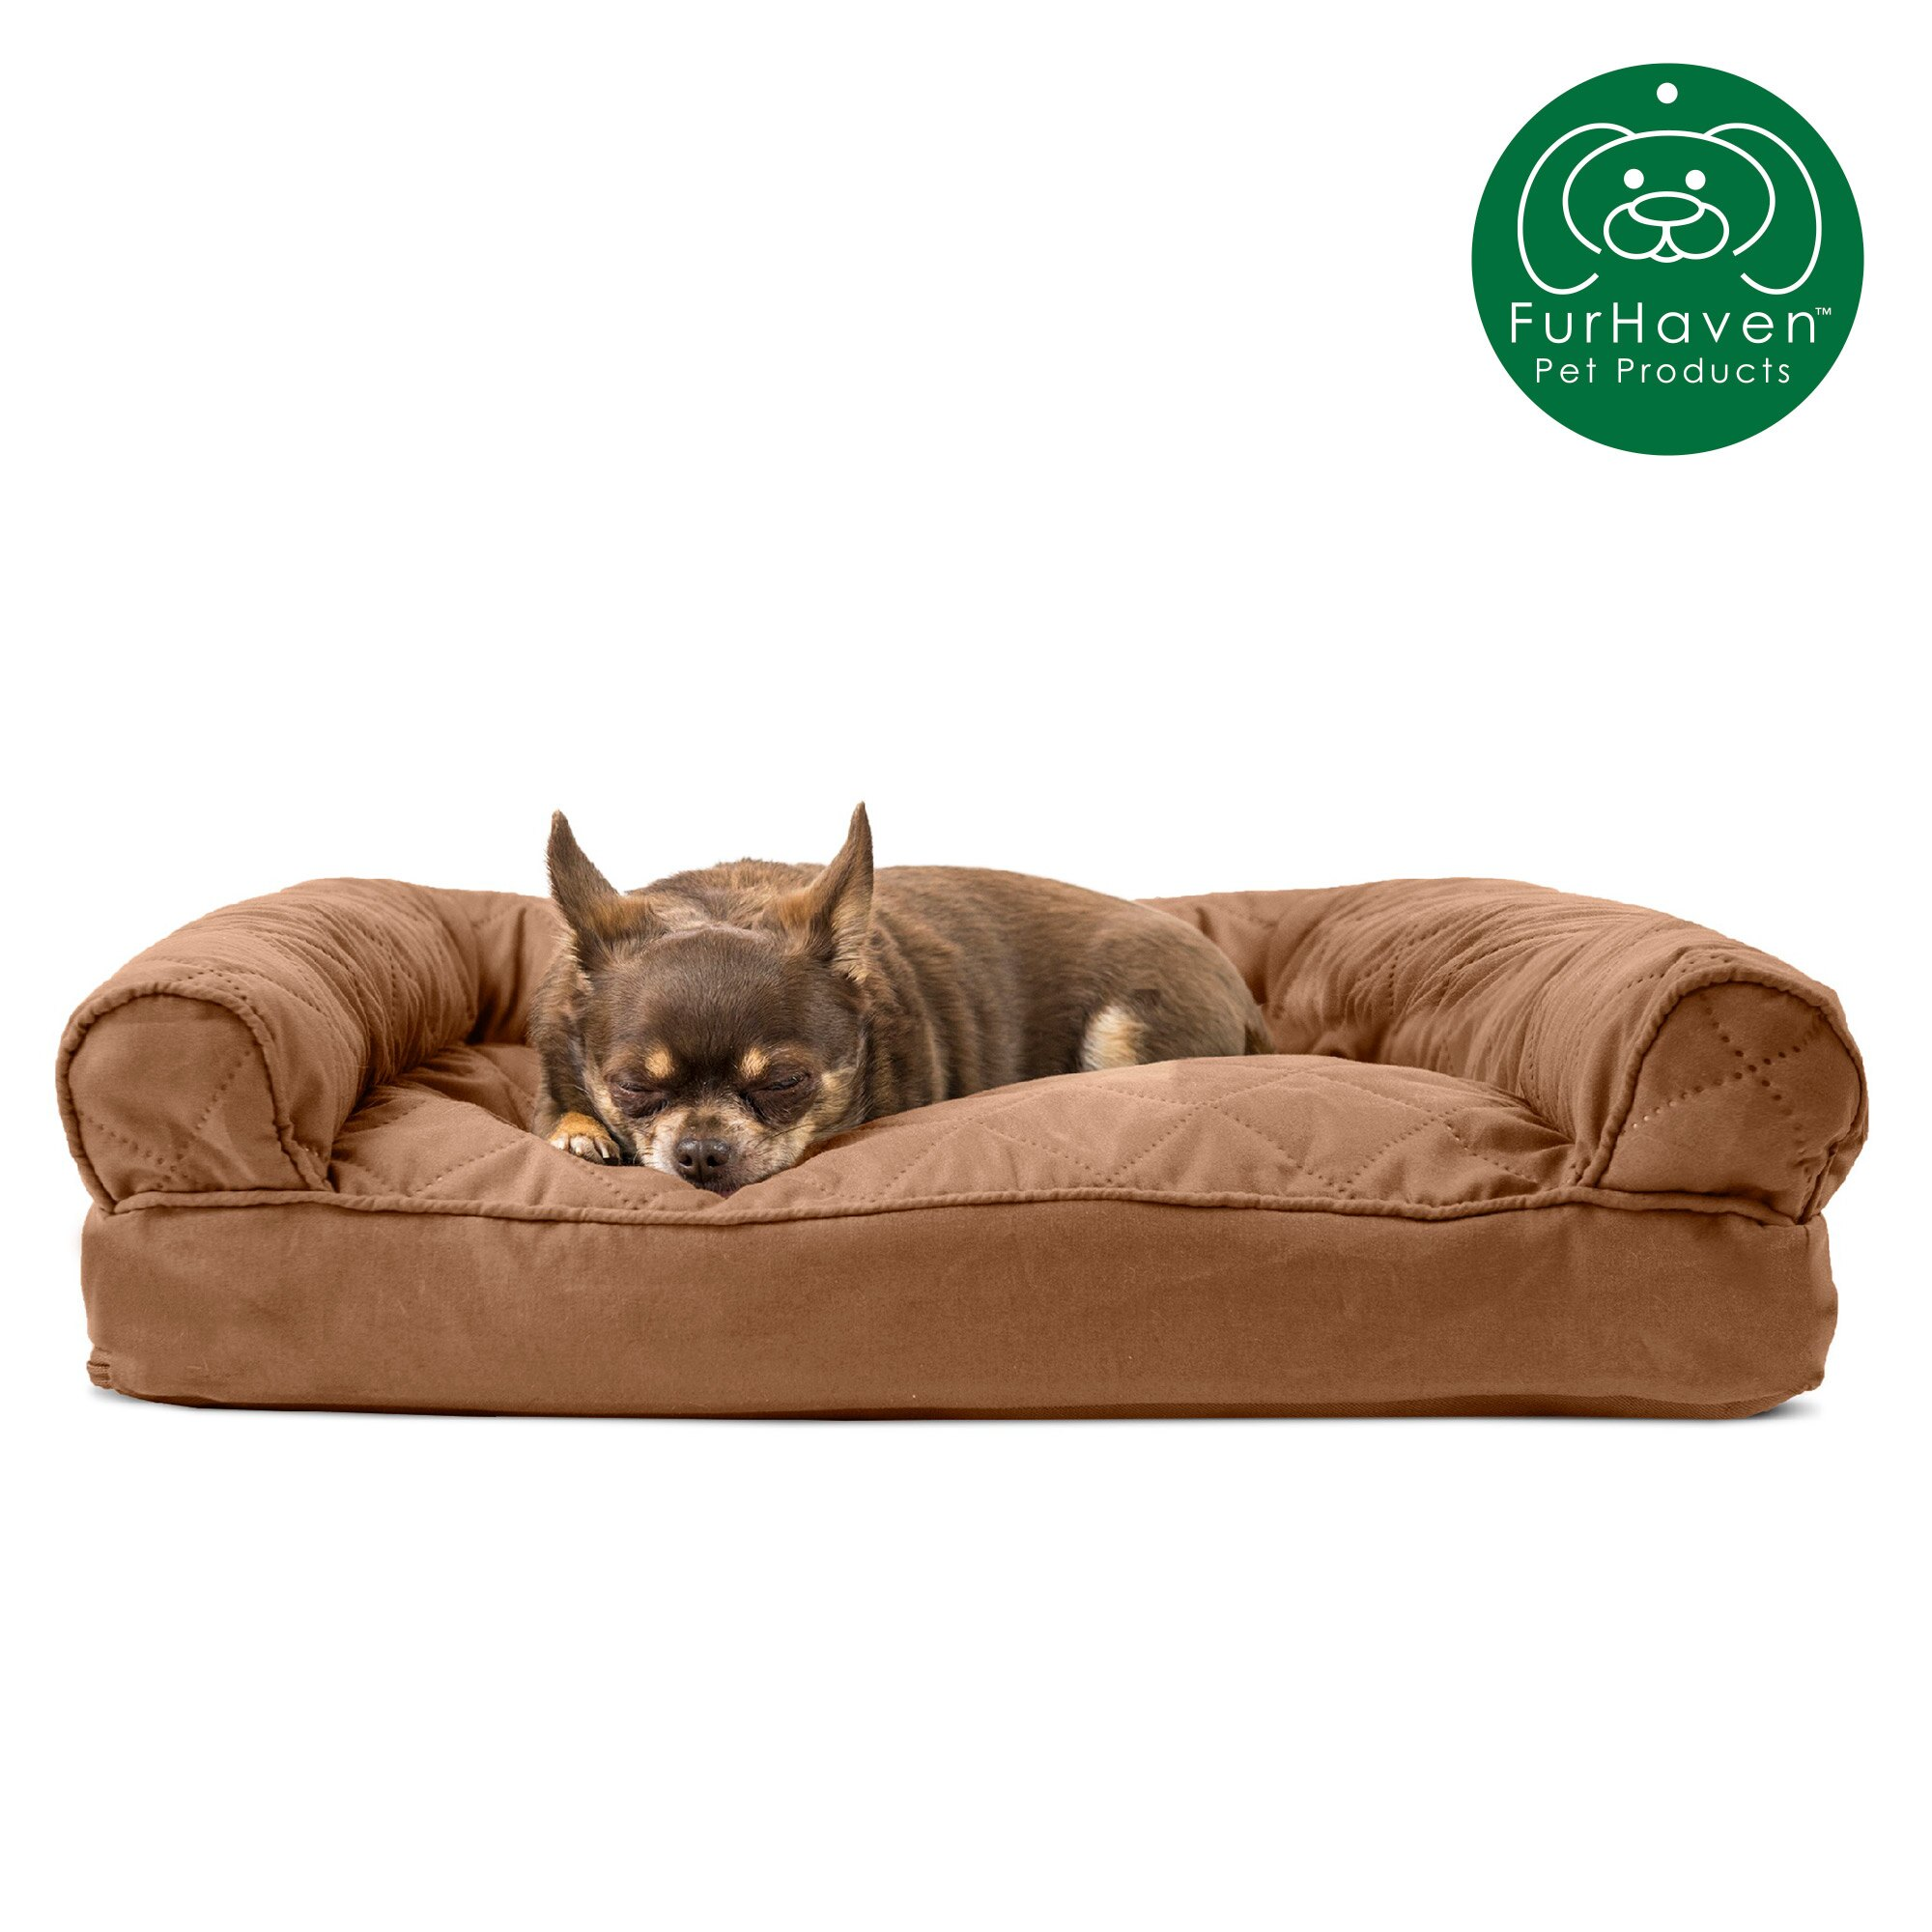 Brilliant Furhaven Pet Dog Bed Quilted Pillow Sofa Style Couch Pet Bed For Dogs Cats Available In Multiple Colors Sizes Ncnpc Chair Design For Home Ncnpcorg